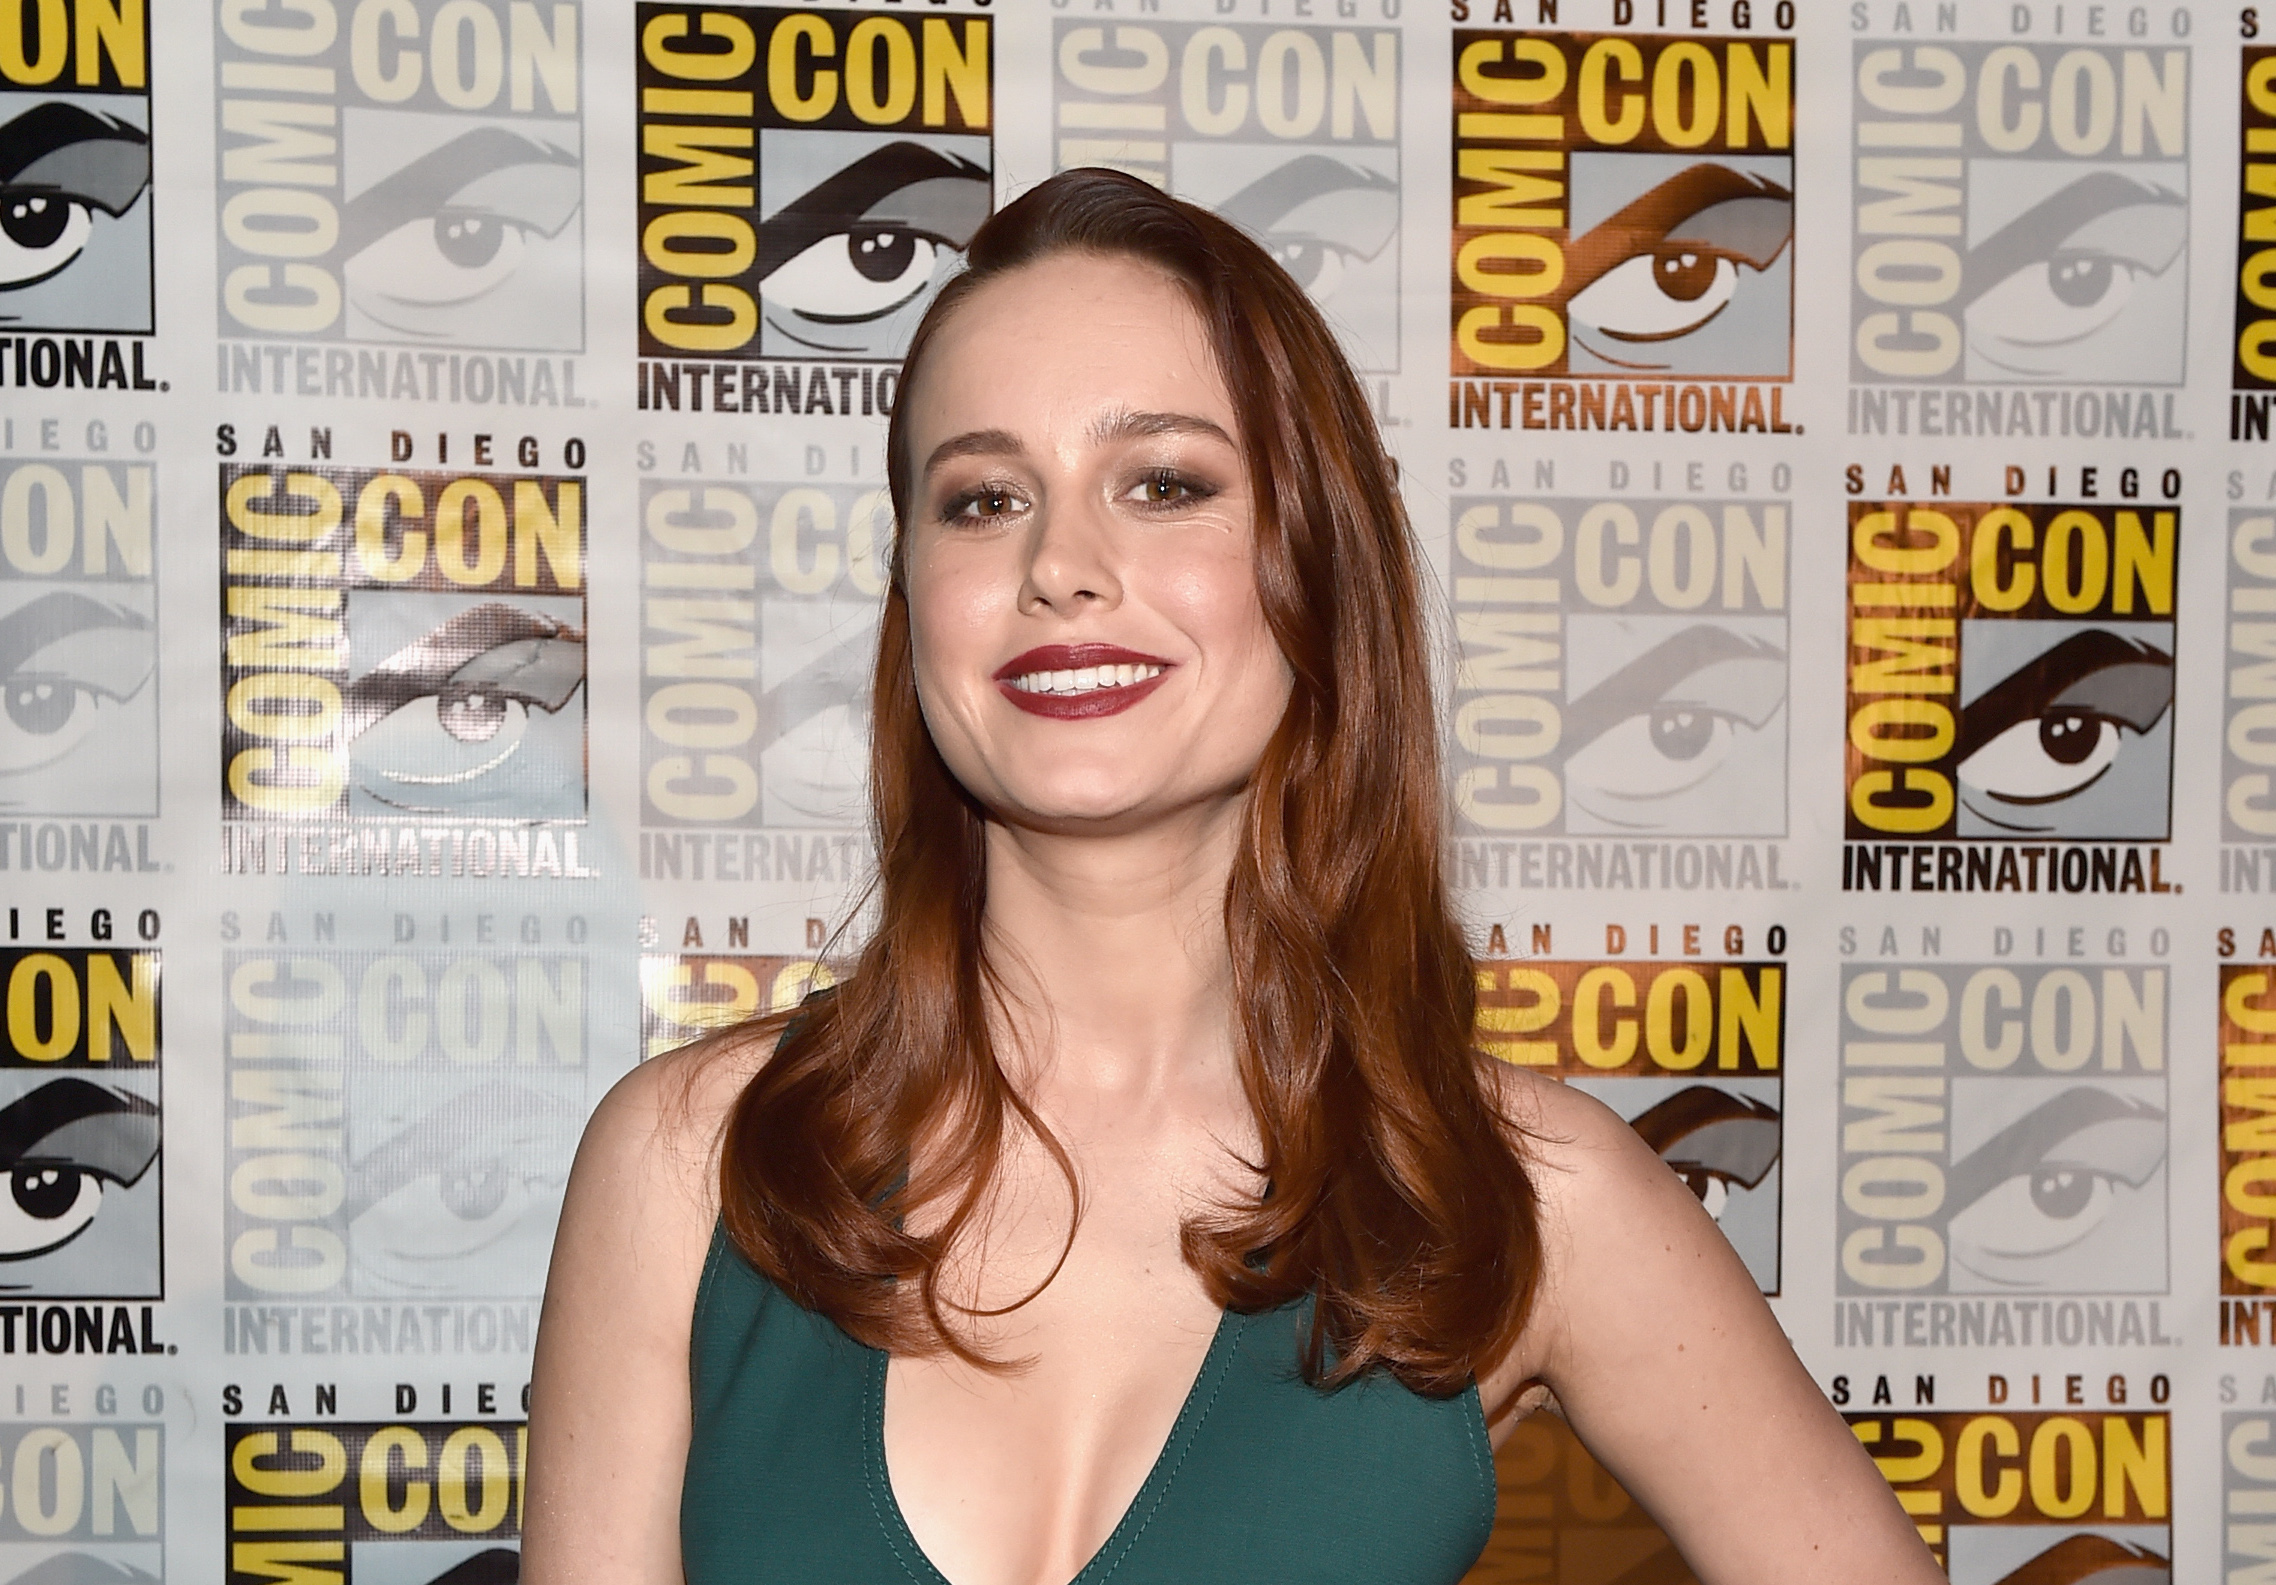 Brie Larson explains why she's playing Captain Marvel, and yes, we just shed a tear of happiness